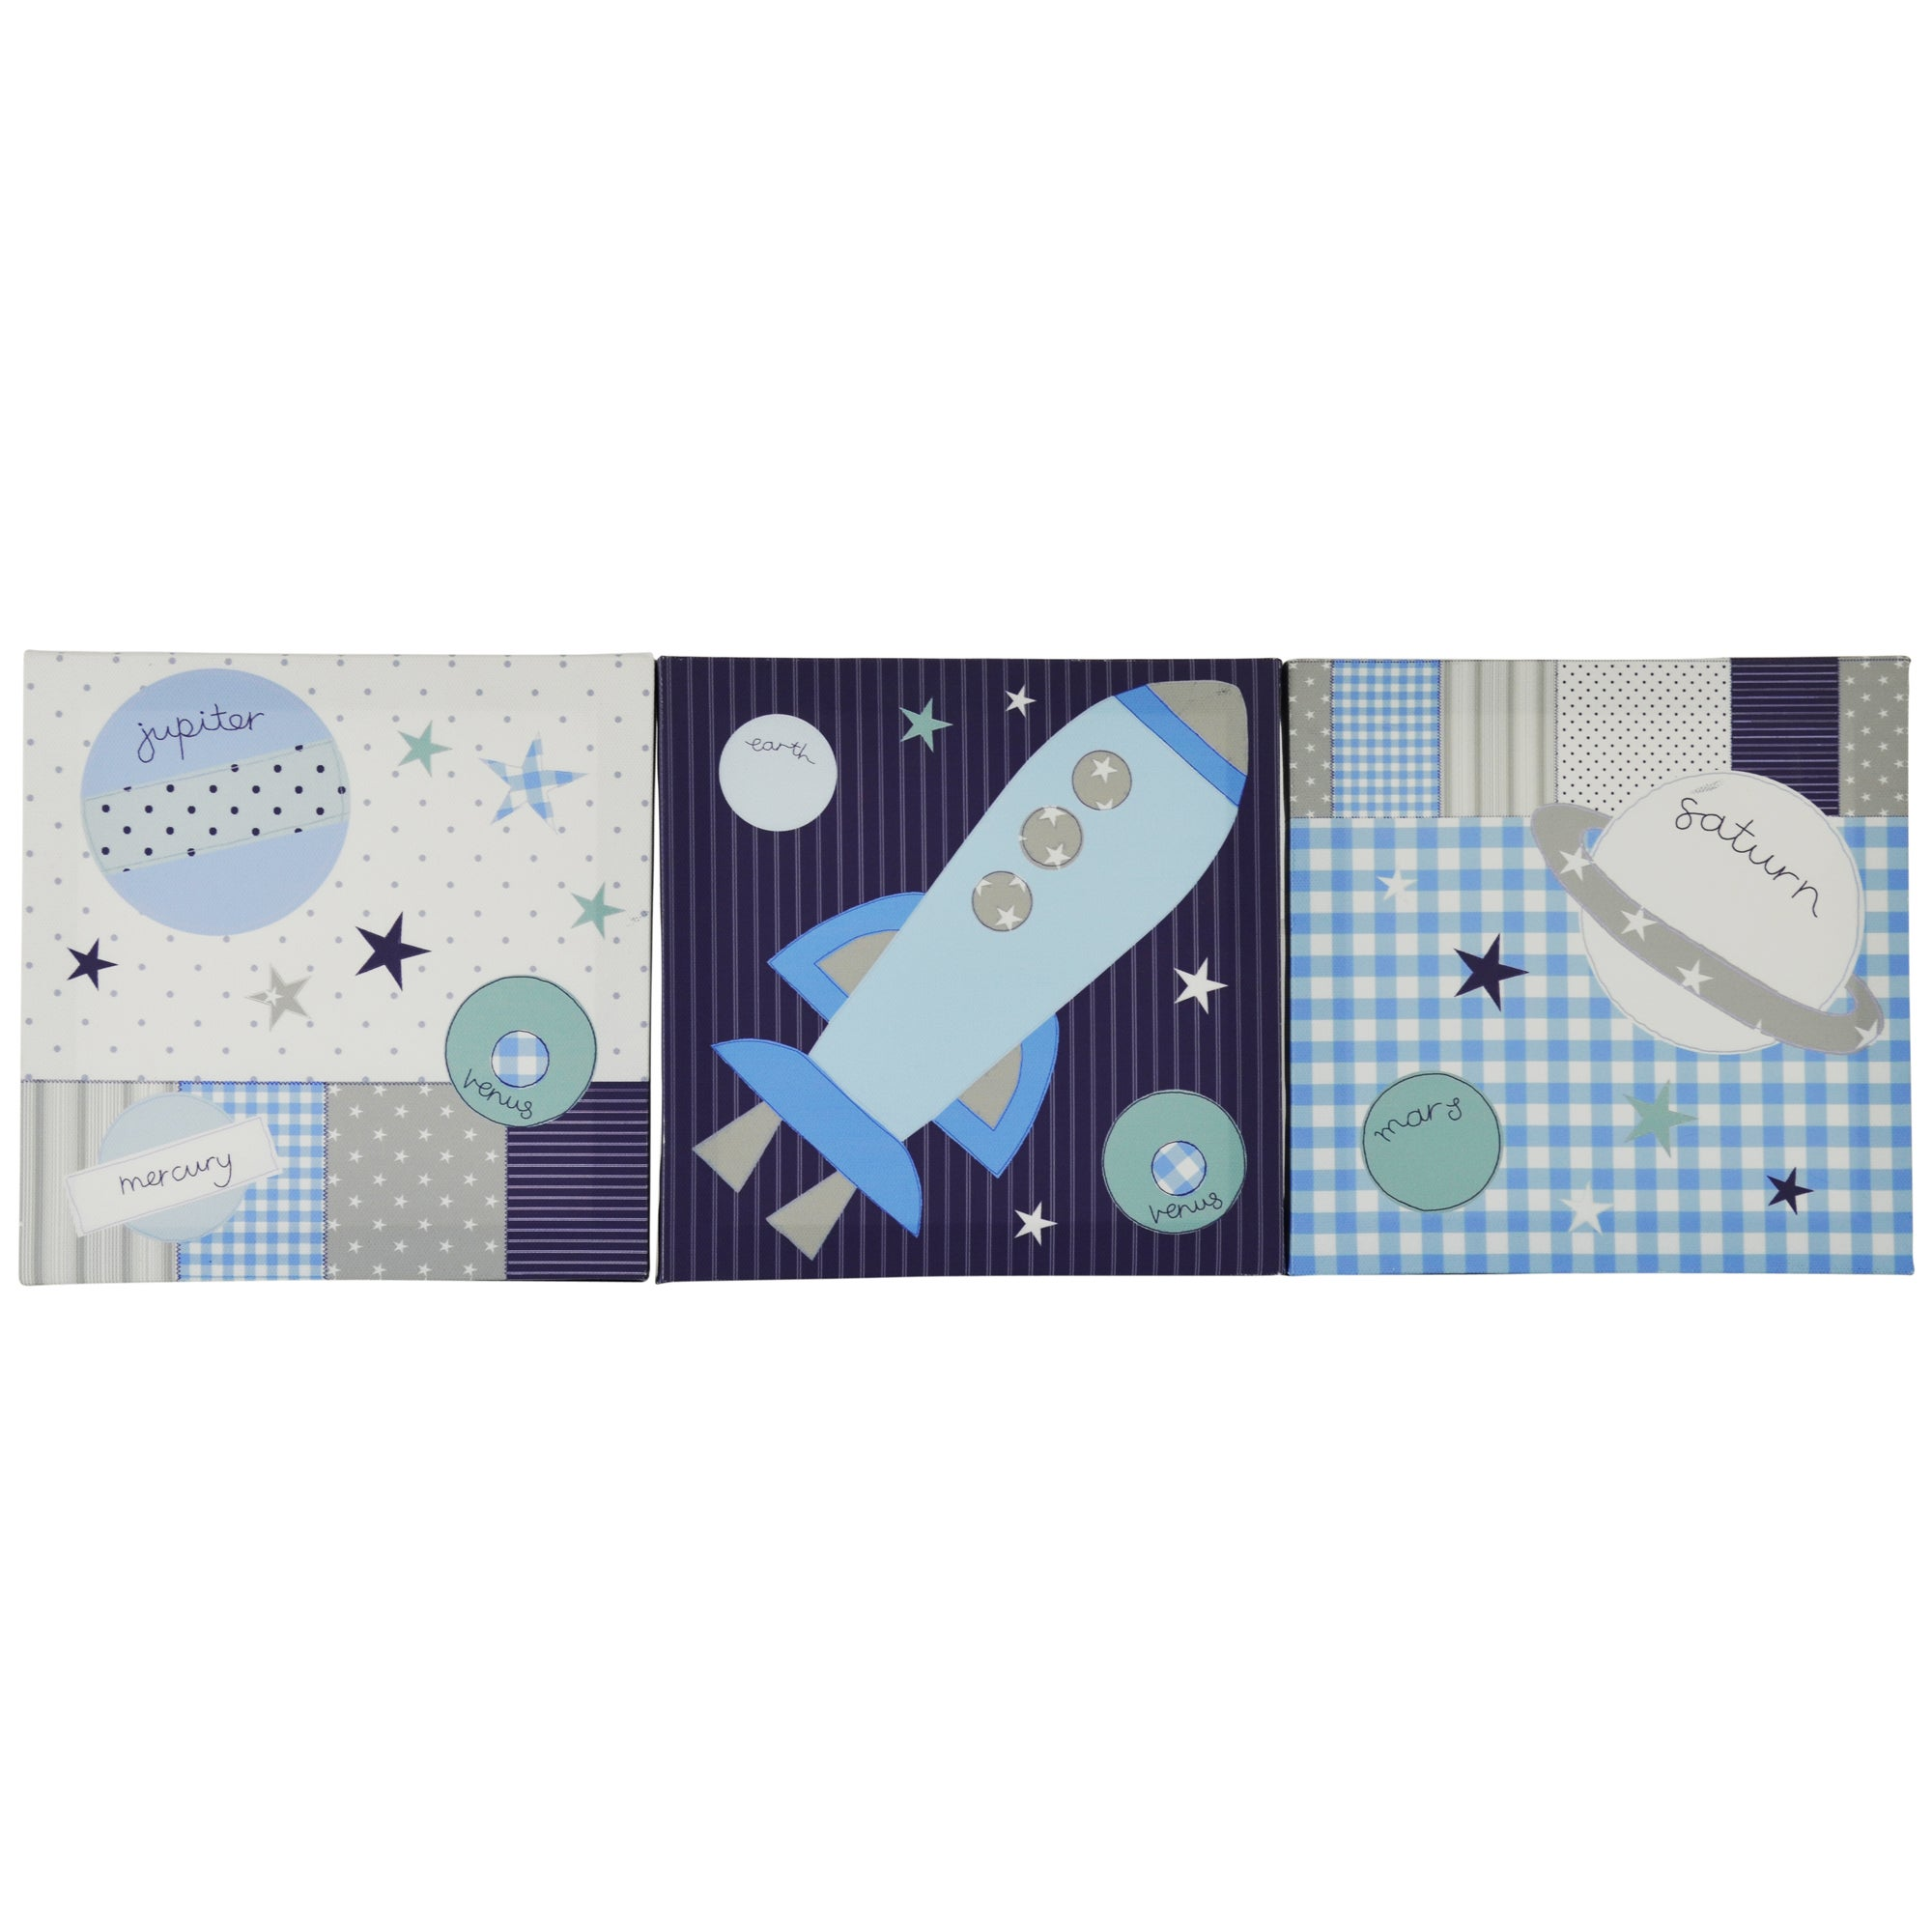 Space Mission Collection Set Of 3 Canvases